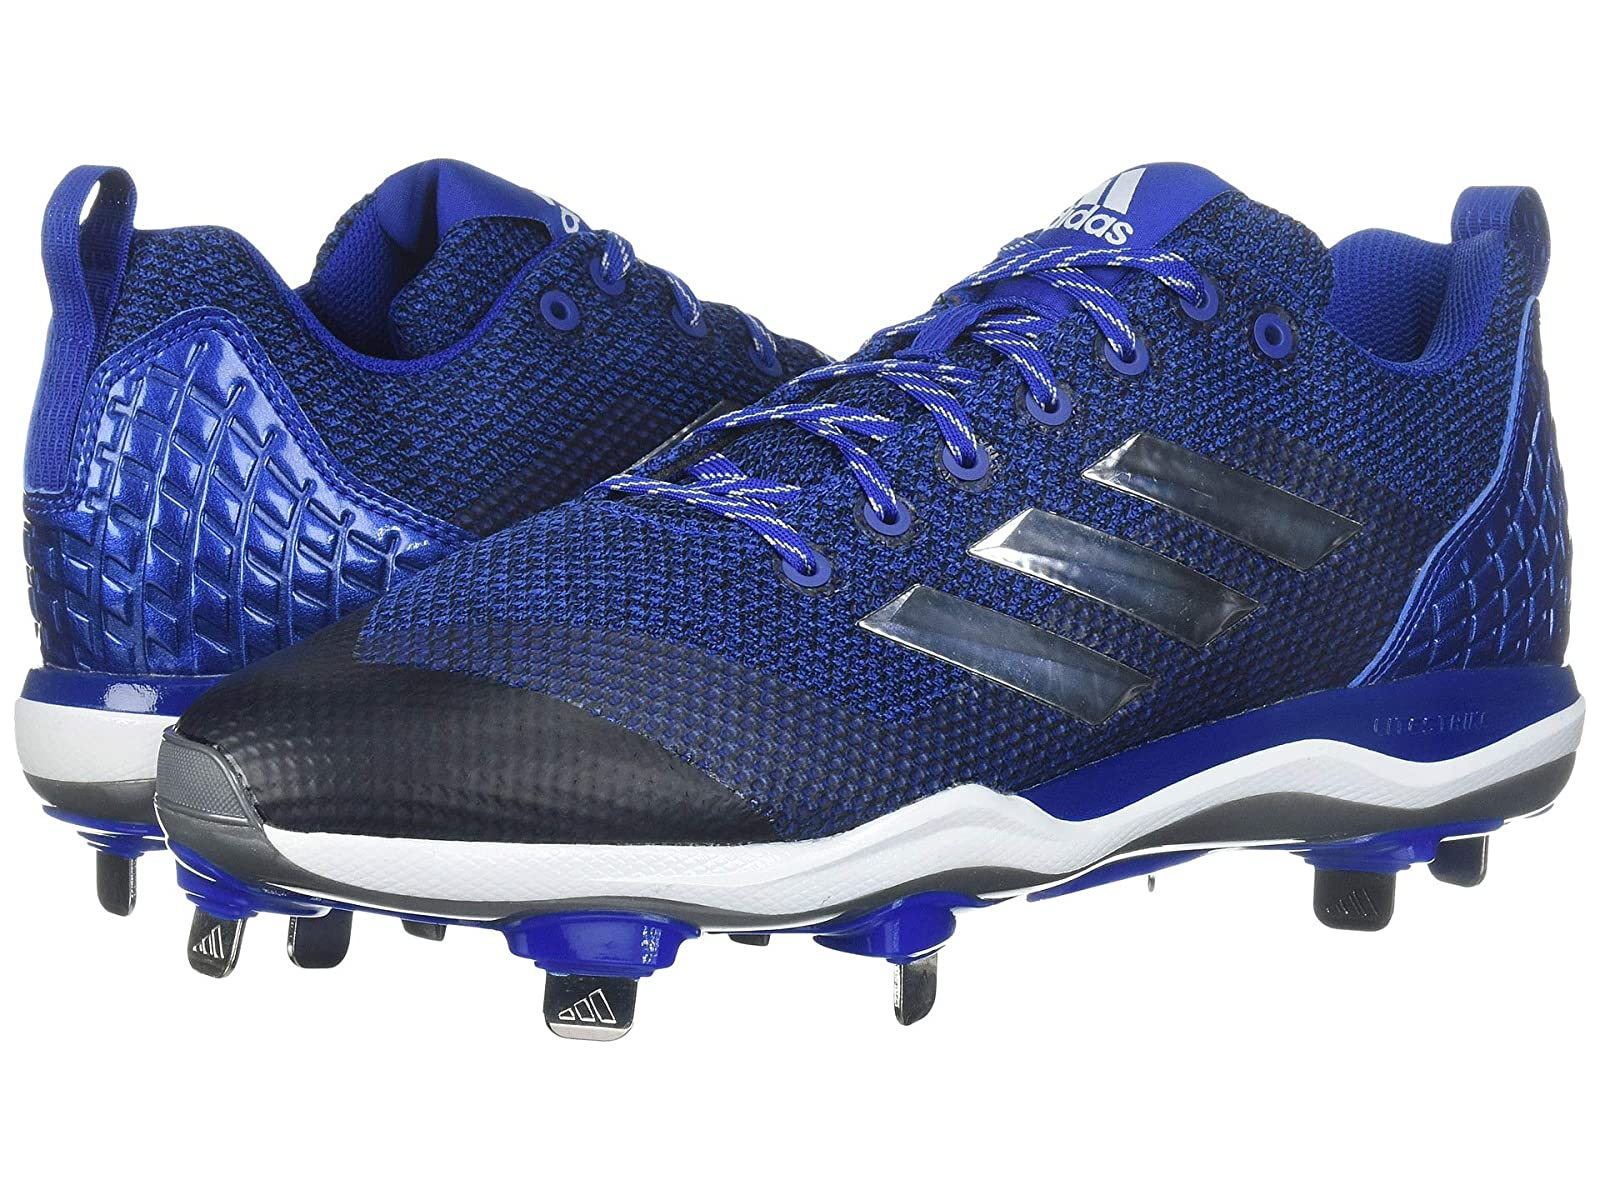 adidas PowerAlley 5Atmospheric grades have affordable shoes